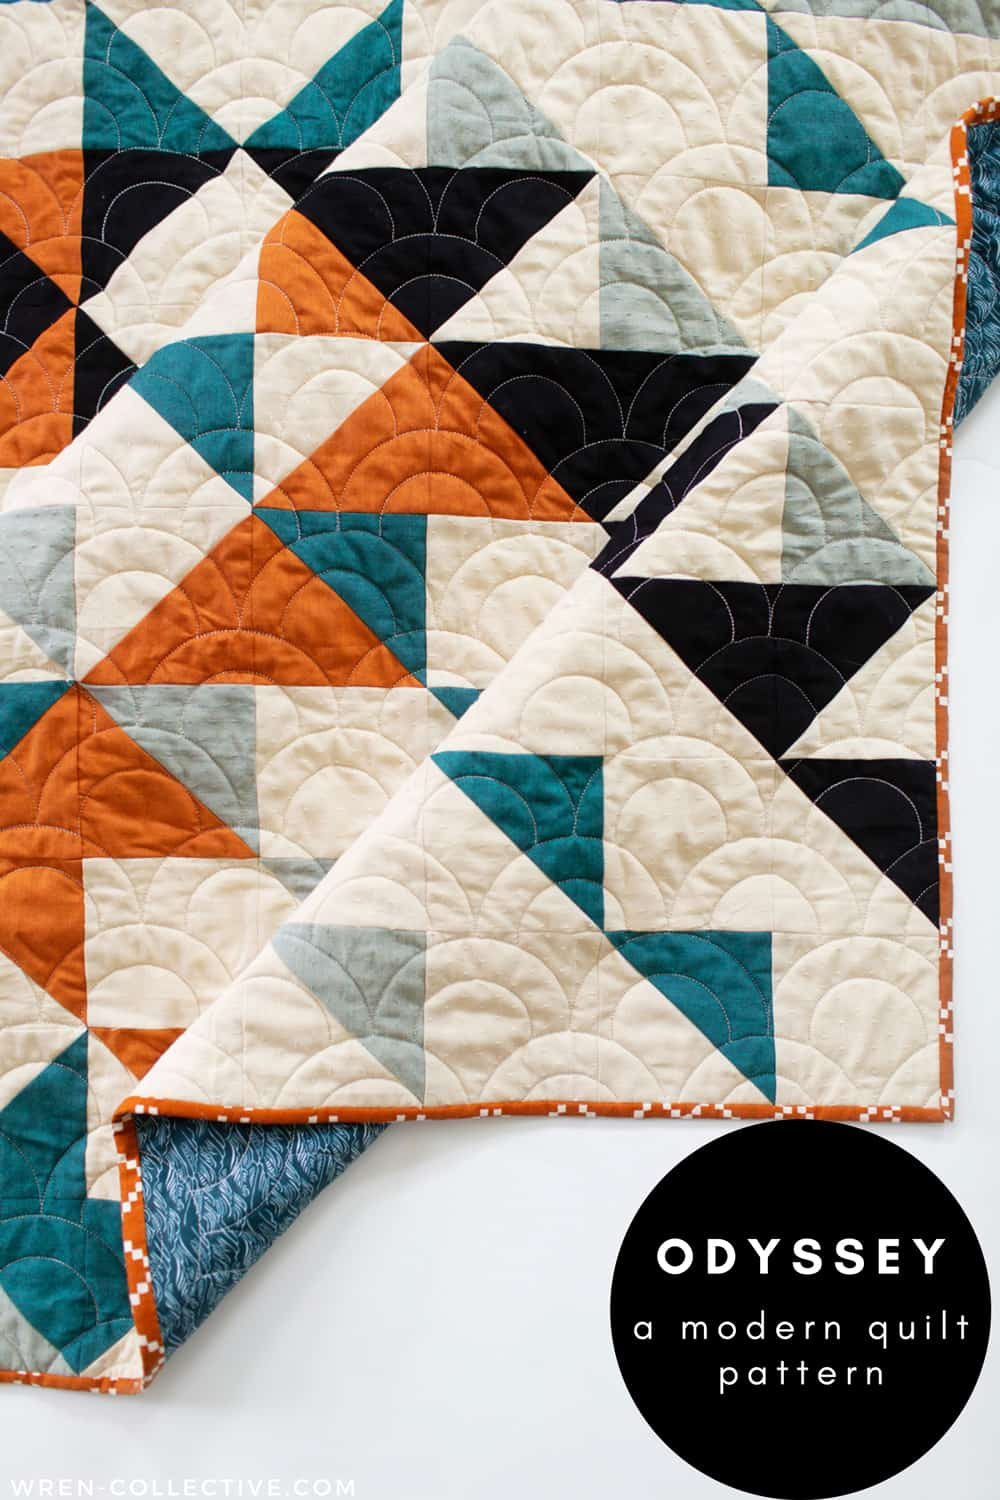 Black and white half square triangles - Odyssey quilt pattern from Wren Collective001